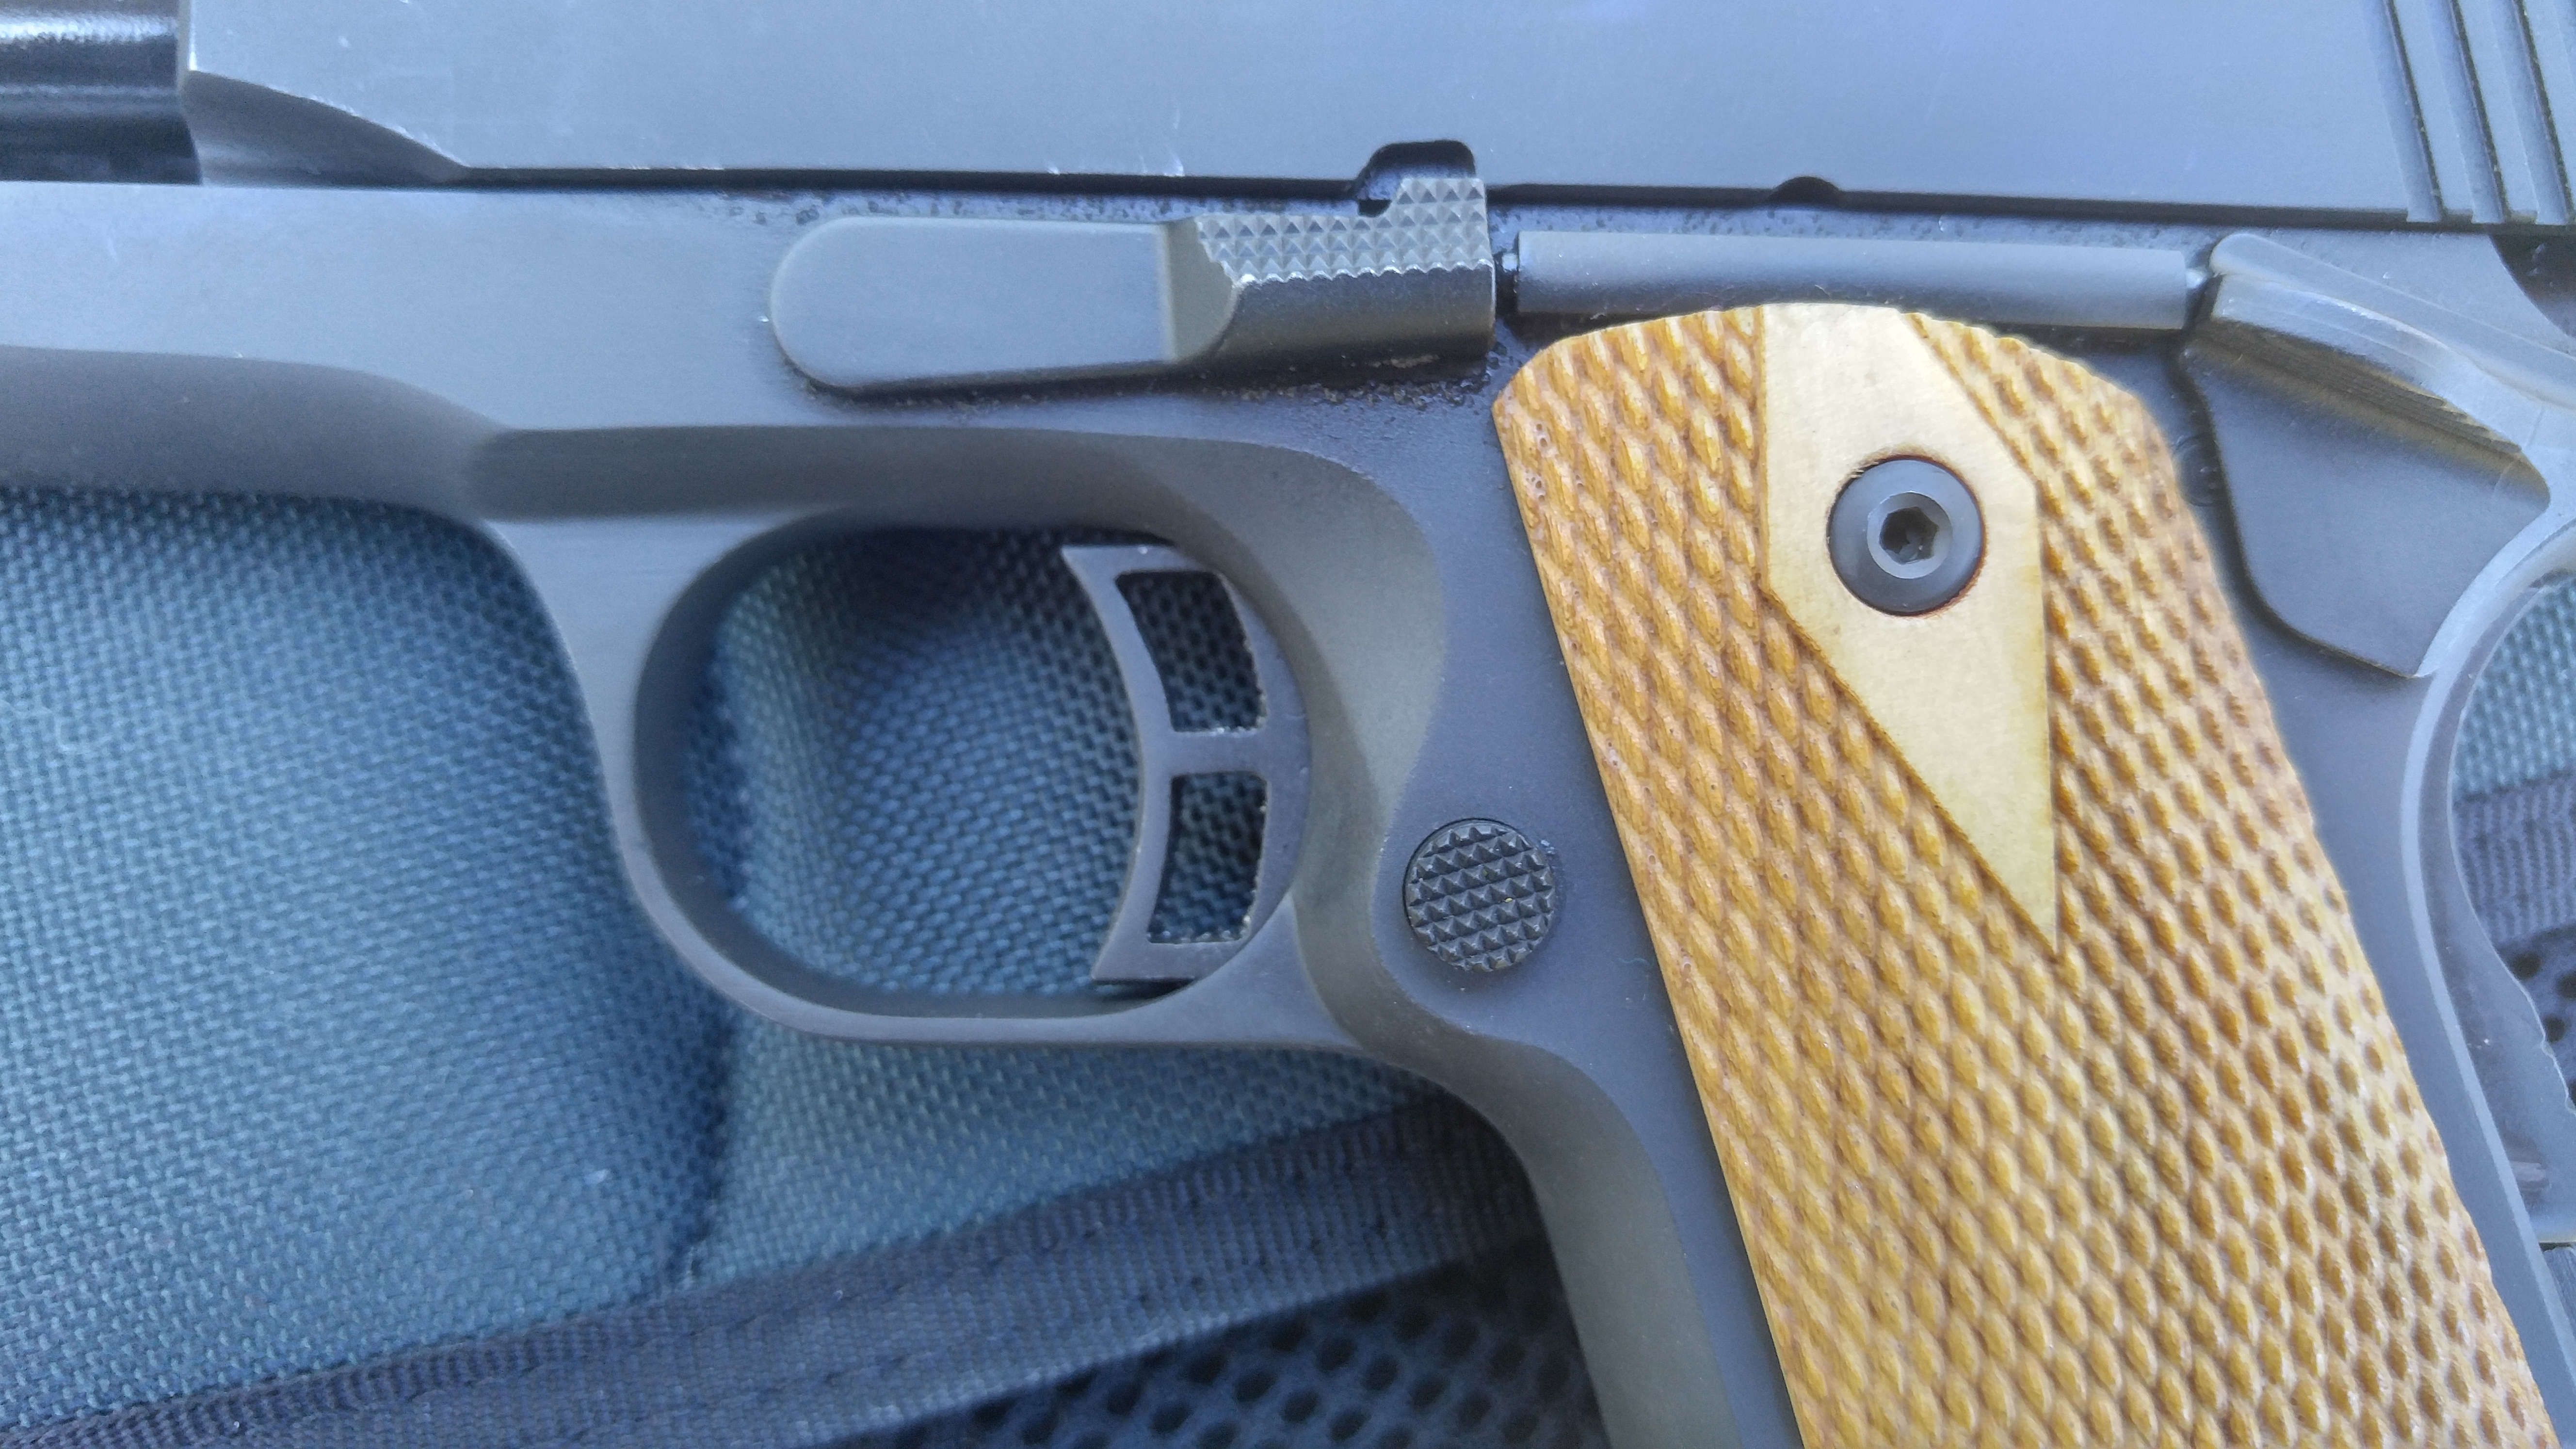 Taylor 9mm 1911 Compact review – A classic CCW | SOFREP